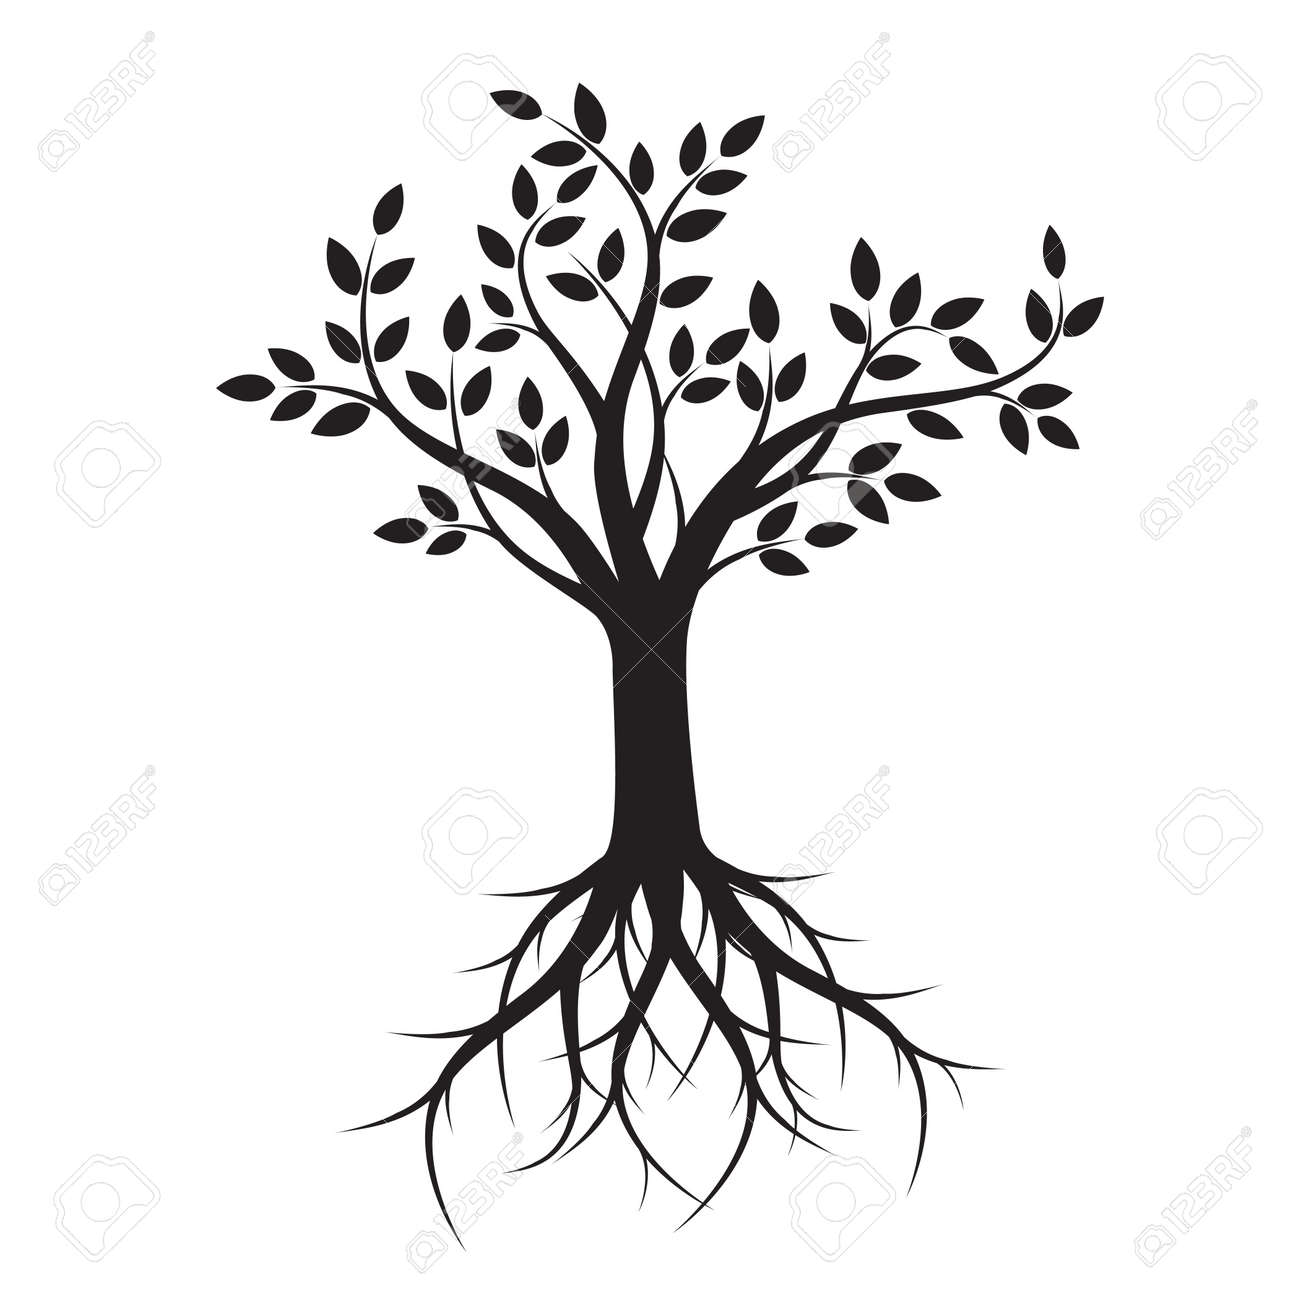 black tree with roots vector illustration royalty free cliparts rh 123rf com family tree with roots vector tree with roots silhouette vector free